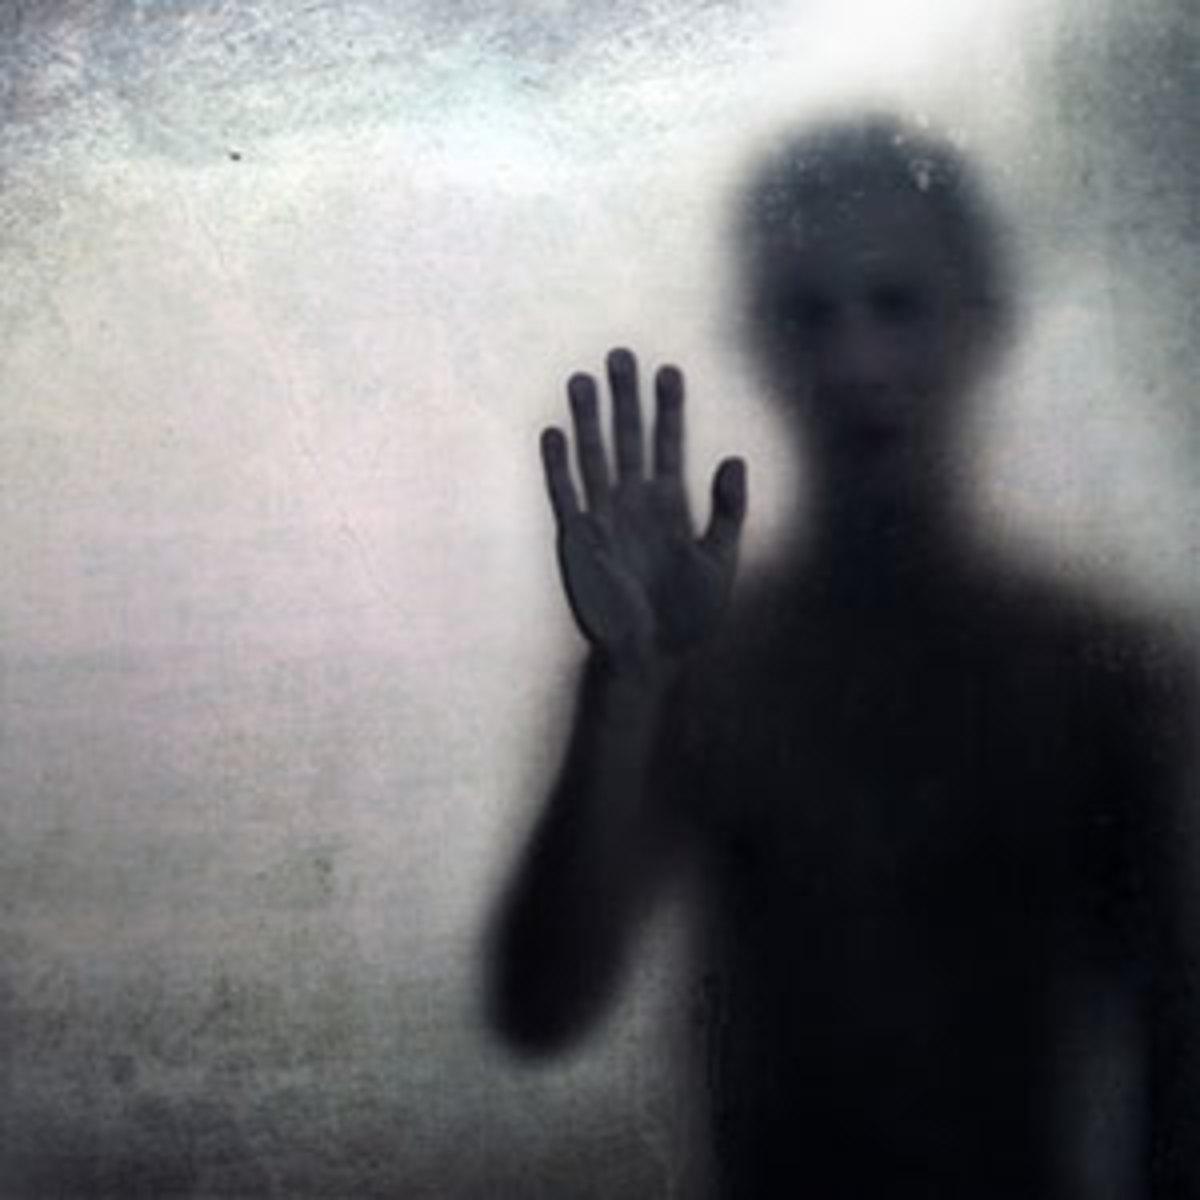 Spirits can remain dormant in dwellings for years until unforeseen circumstances  force them to interact with the living.